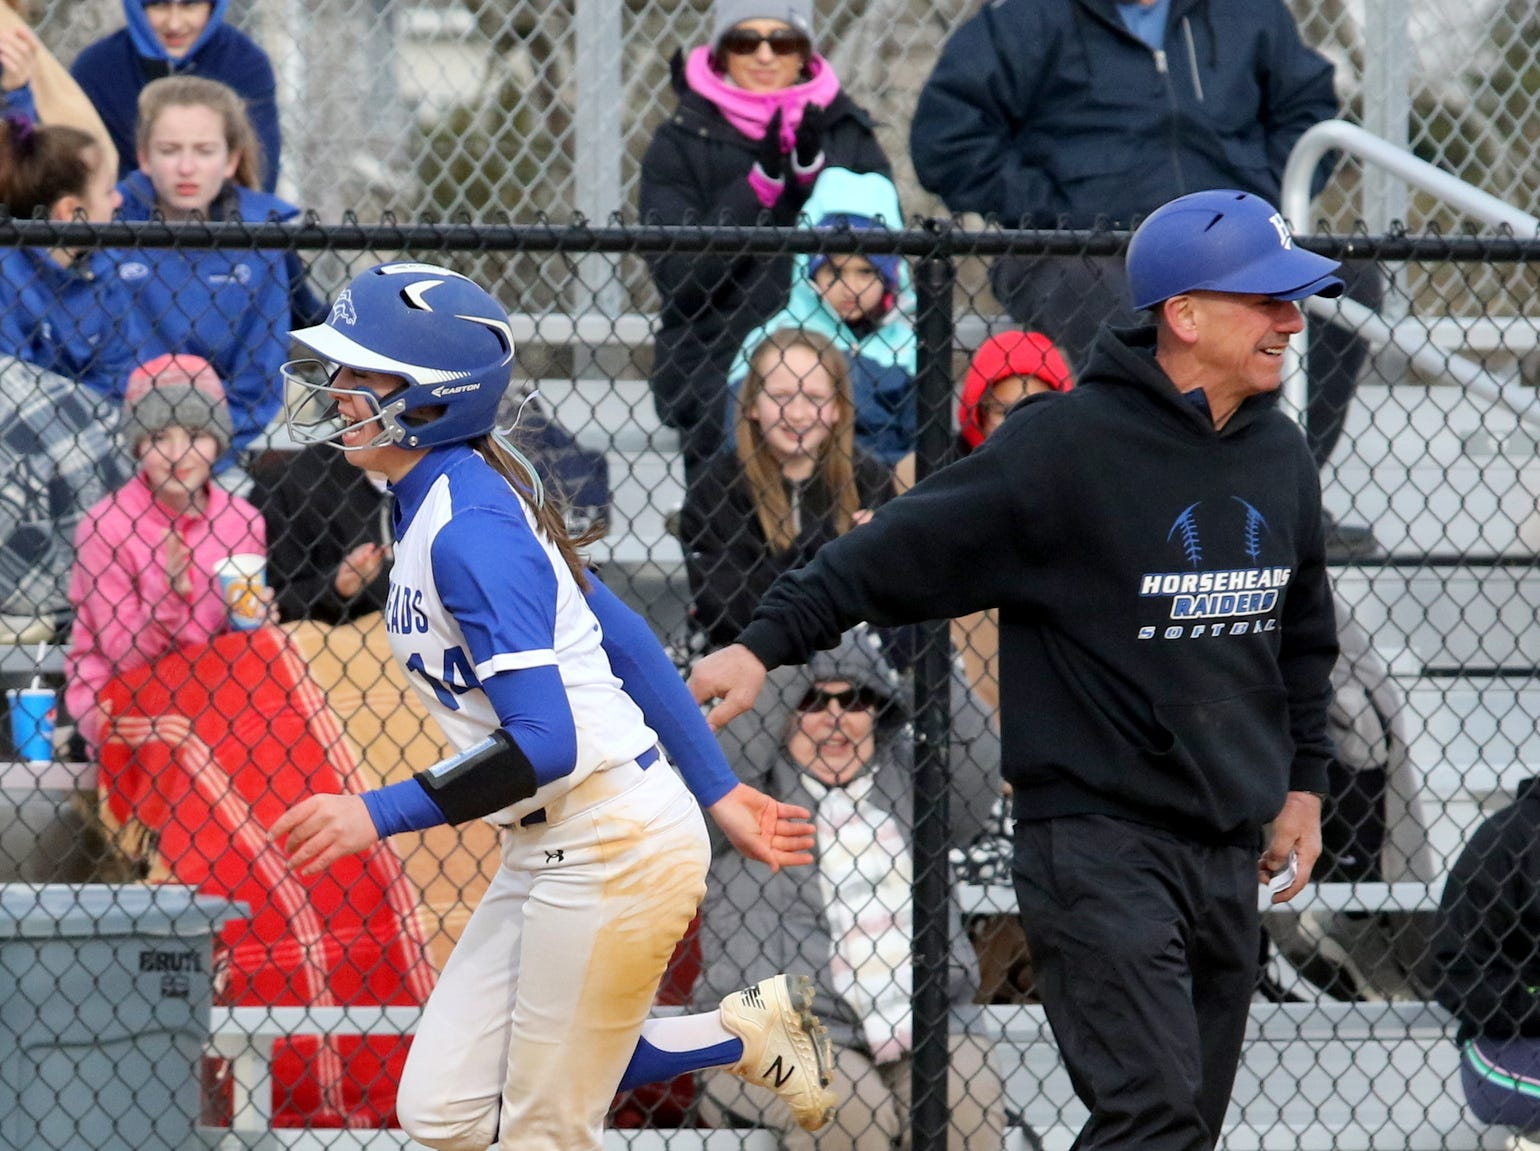 Horseheads head coach Al Falkowski congratulates Maiah Skakal after her homer against Owego on April 4, 2019 at Horseheads Middle School.